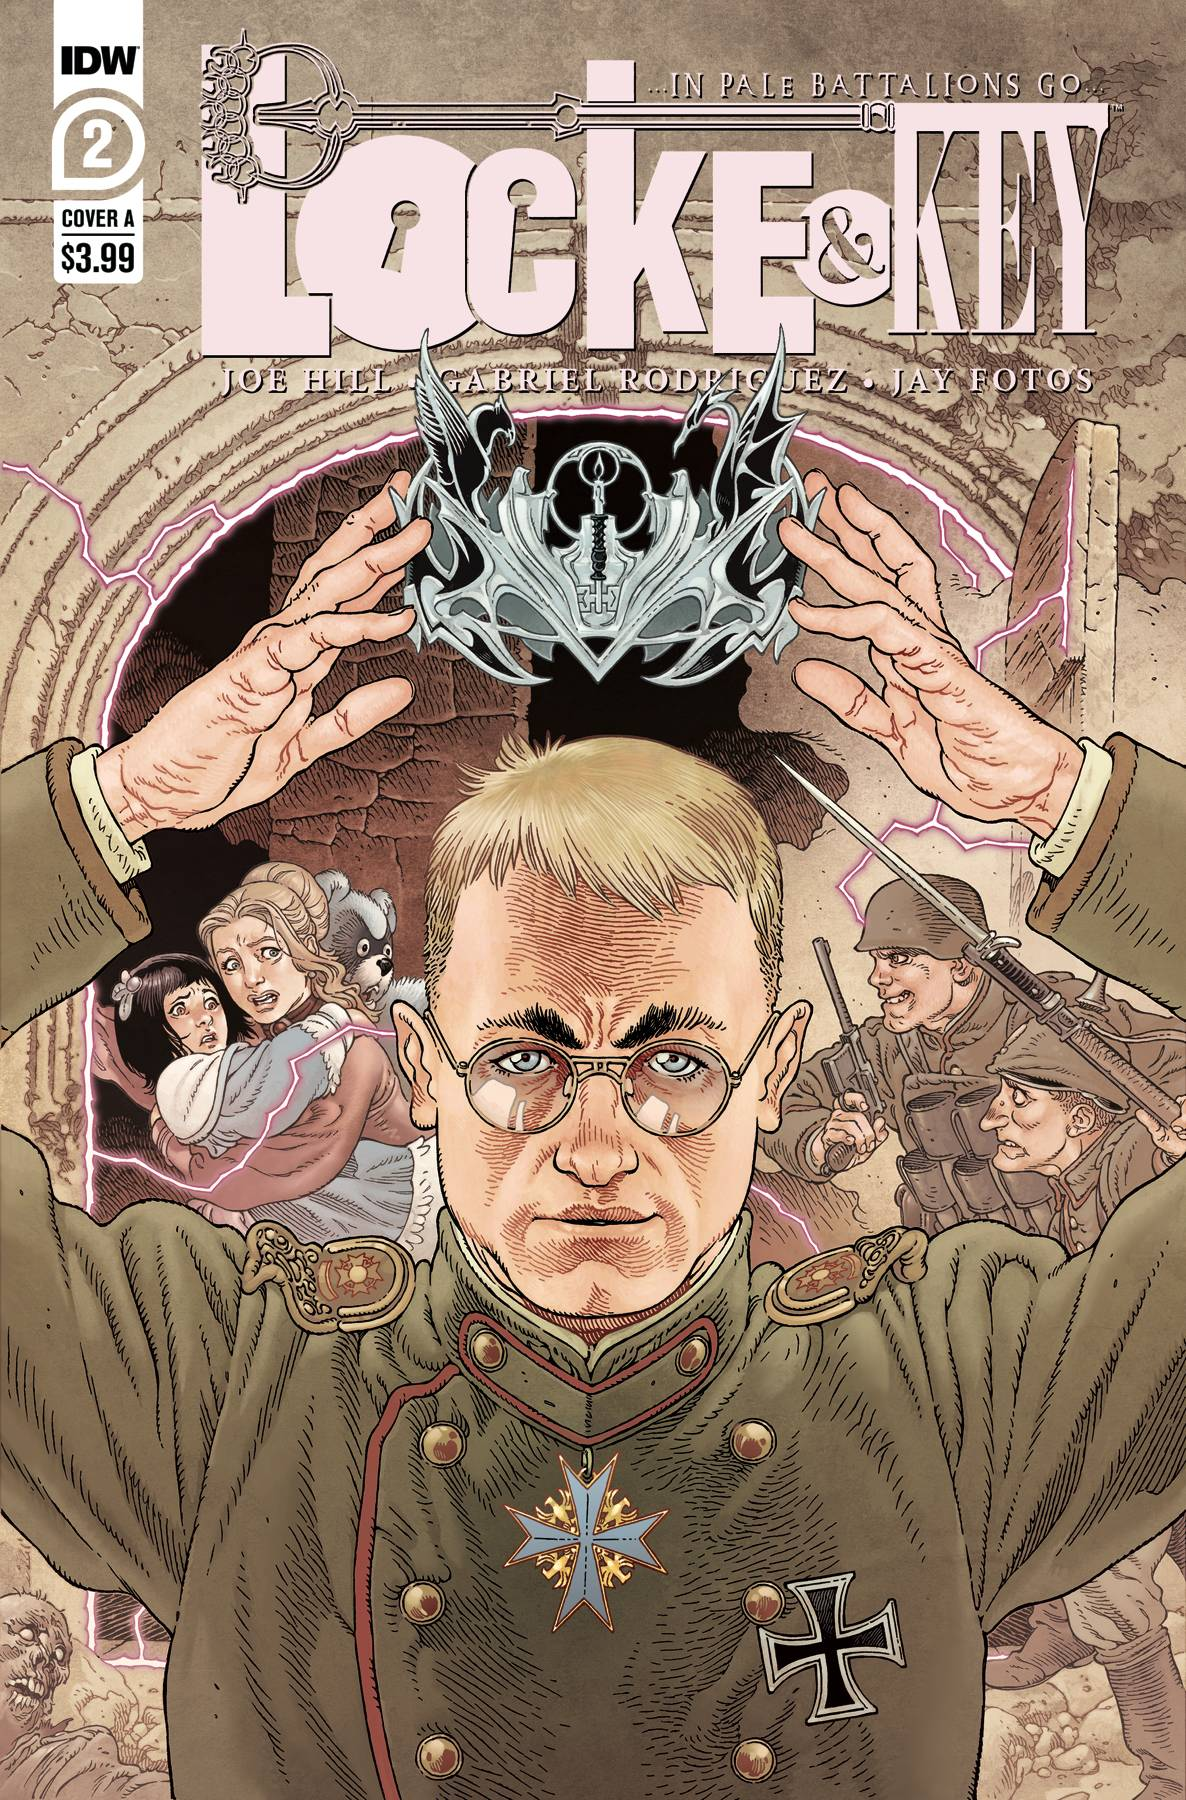 Locke & Key: In Pale Battalions Go #2 (2020)